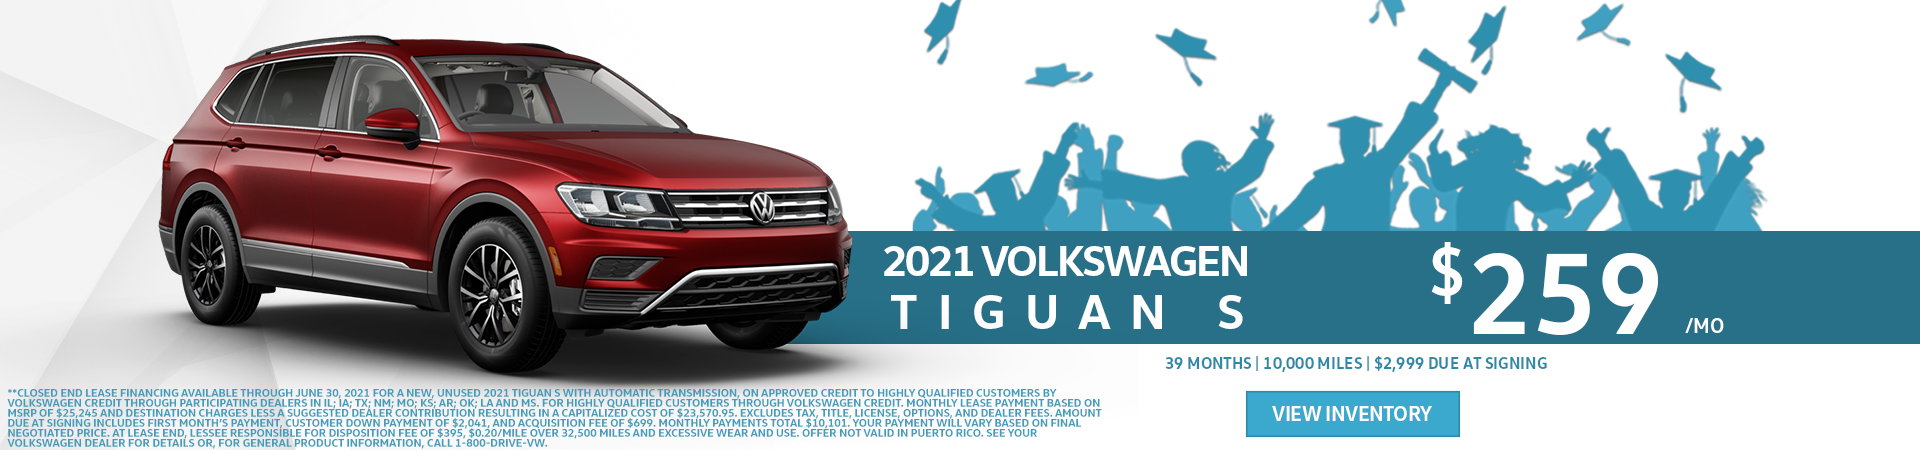 2021 Tiguan S Lease for $259 per month for 36 months with $2,999 due at signing. Click to view inventory